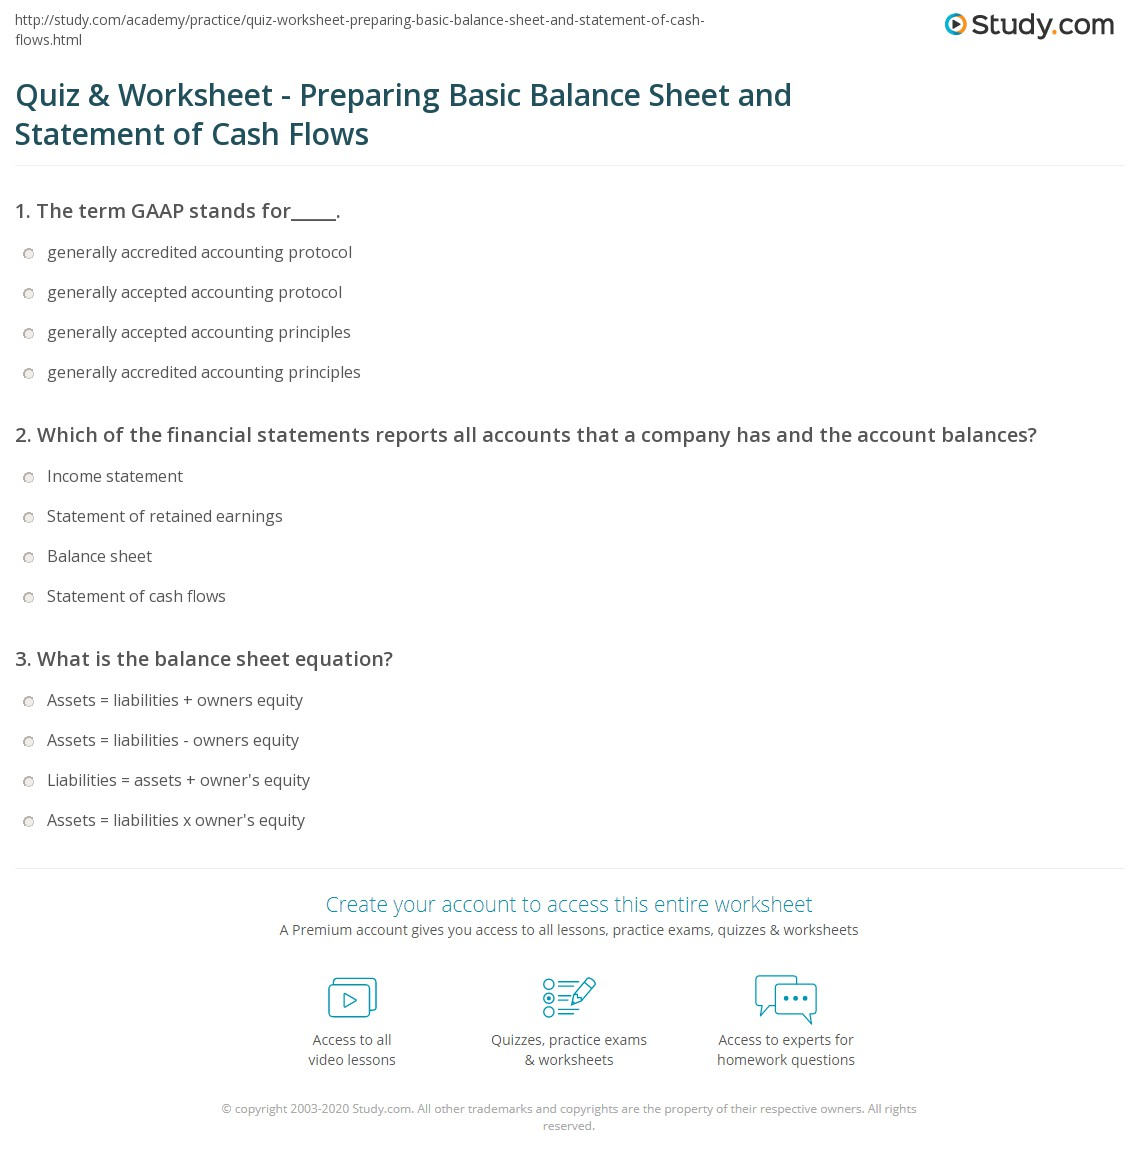 Print How To Prepare The Basic Balance Sheet And Statement Of Cash Flows  Worksheet  How To Prepare A Balance Sheet